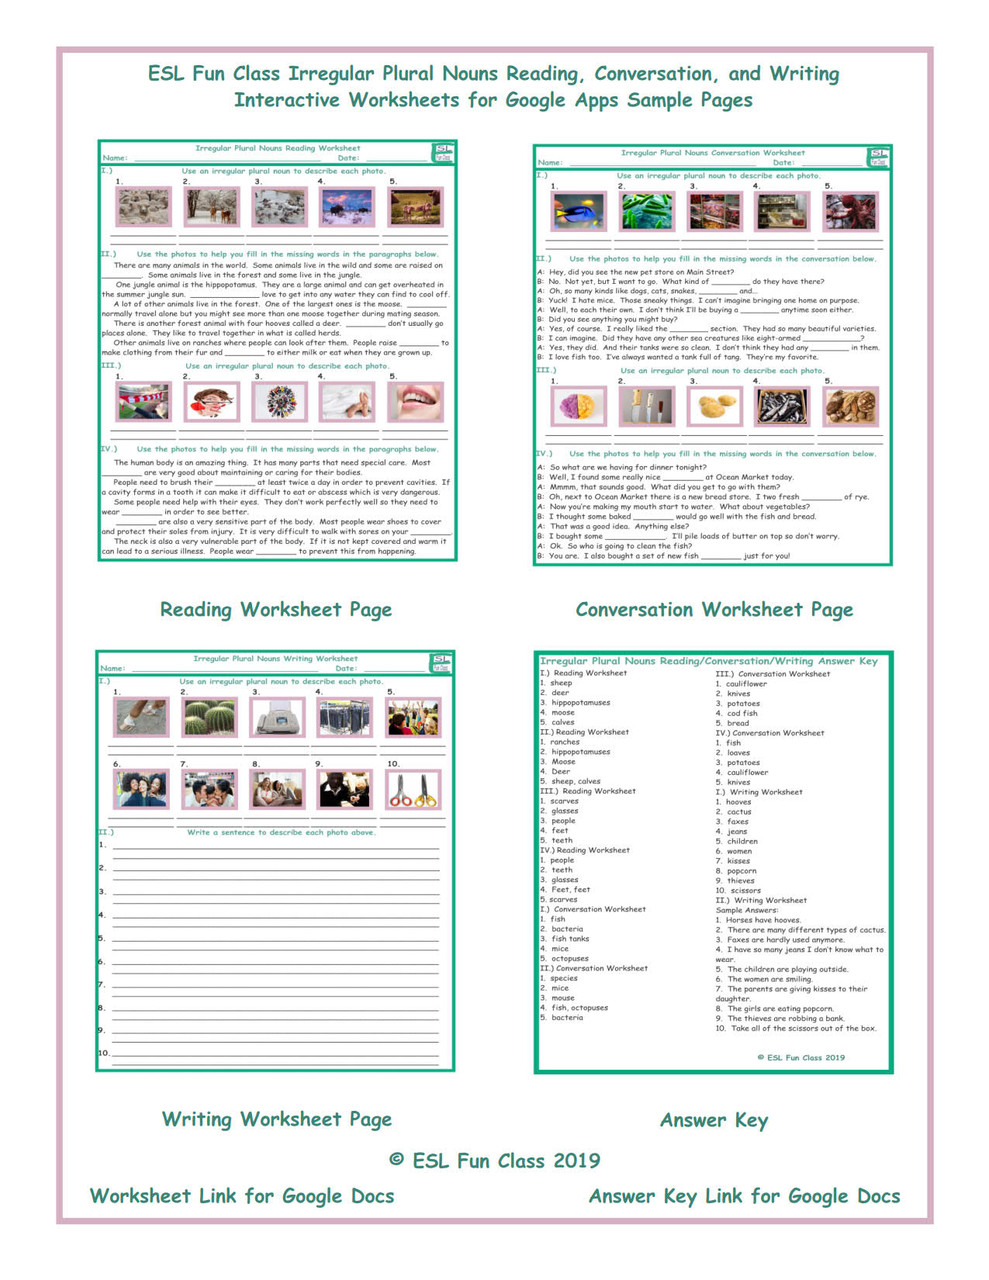 Irregular Plural Nouns Read-Converse-Write Interactive Worksheets for Google Apps LINKS